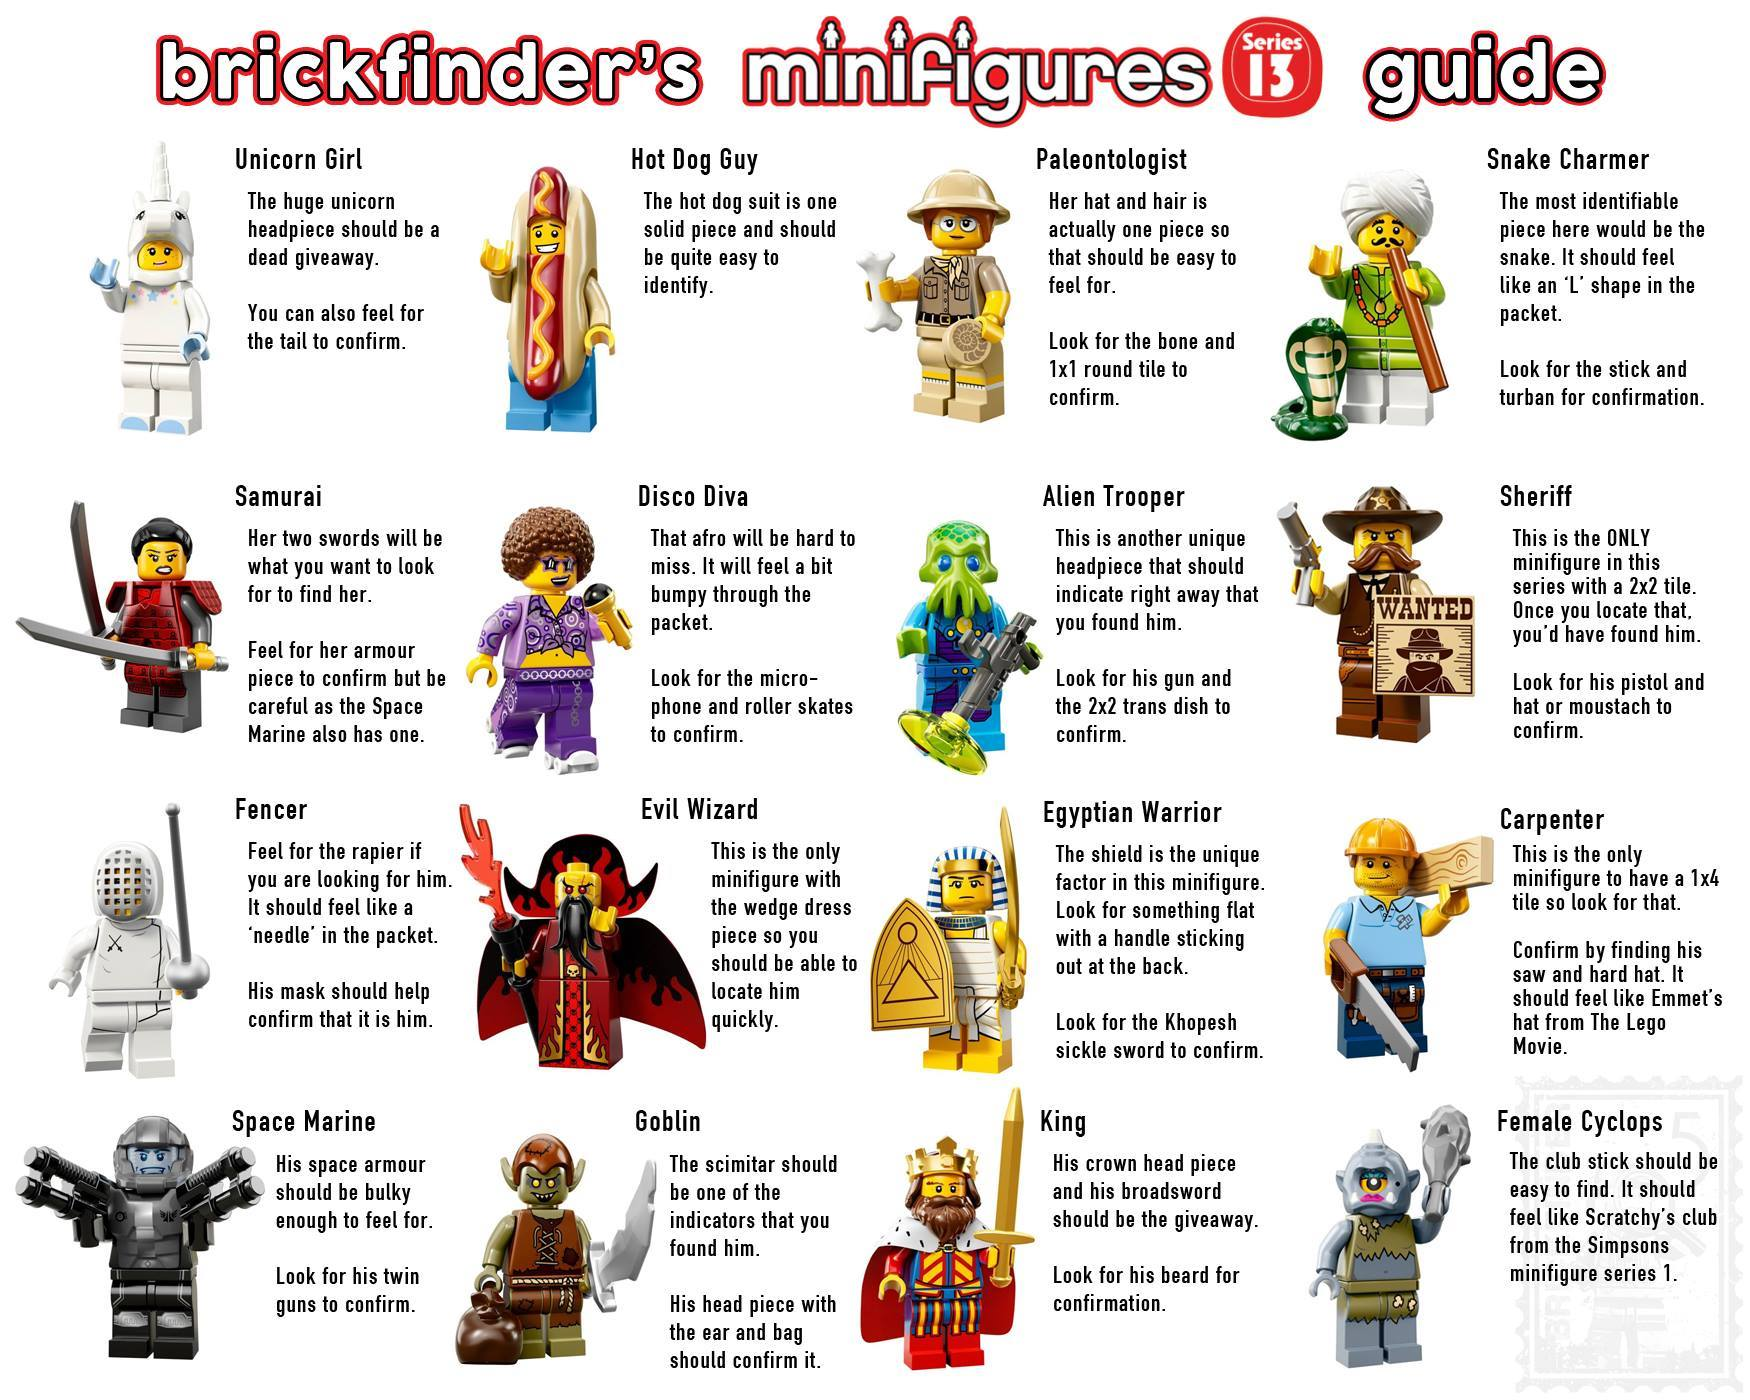 Lego harry potter minifigure feel guide | brickfinder brickfinder.